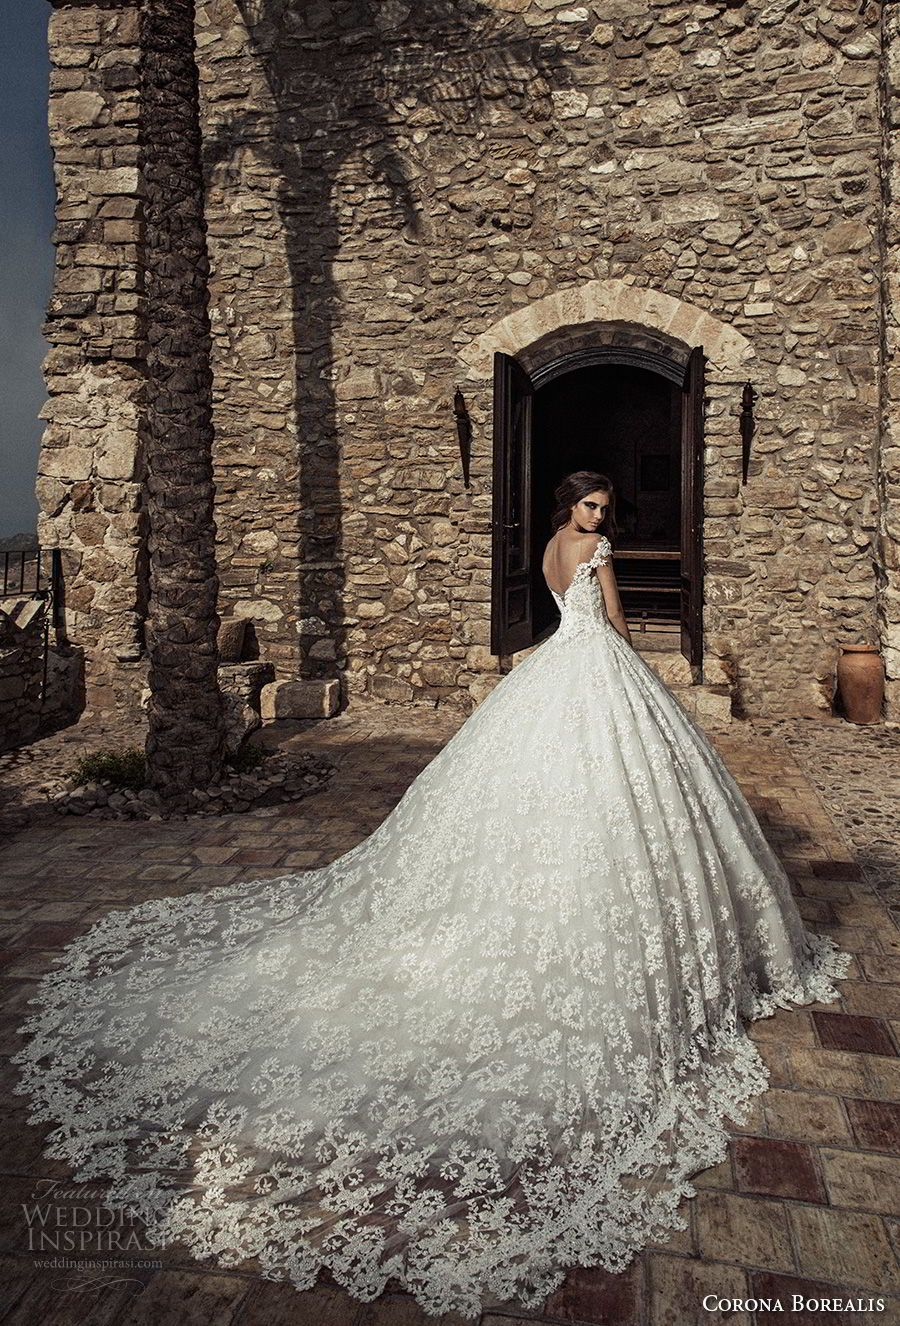 Corona borealis wedding dresses corona neckline and wedding